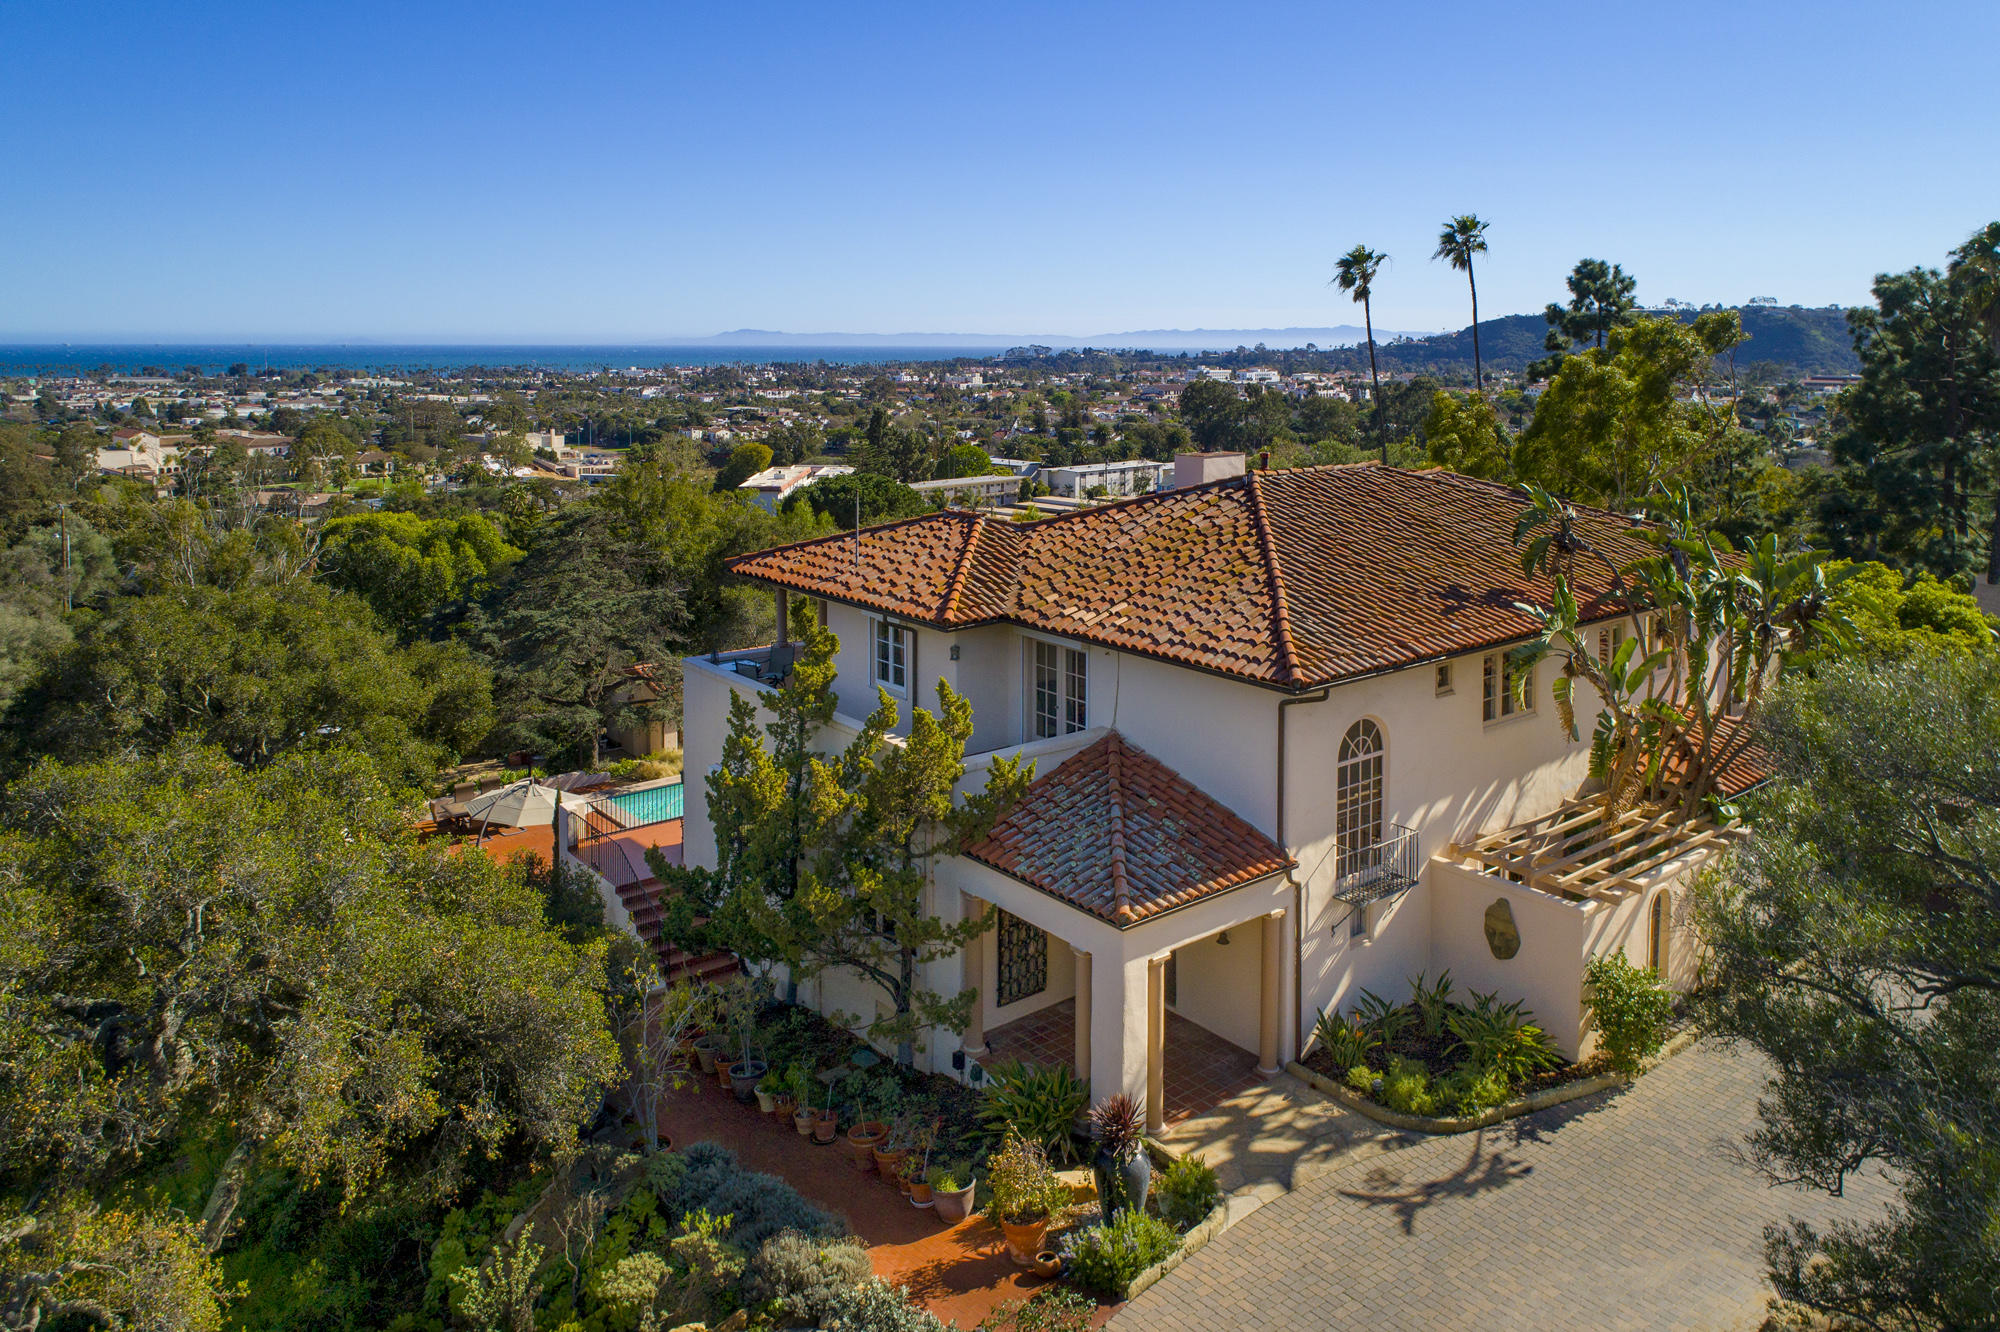 Property photo for 800 E Micheltorena St Santa Barbara, California 93103 - 18-1103